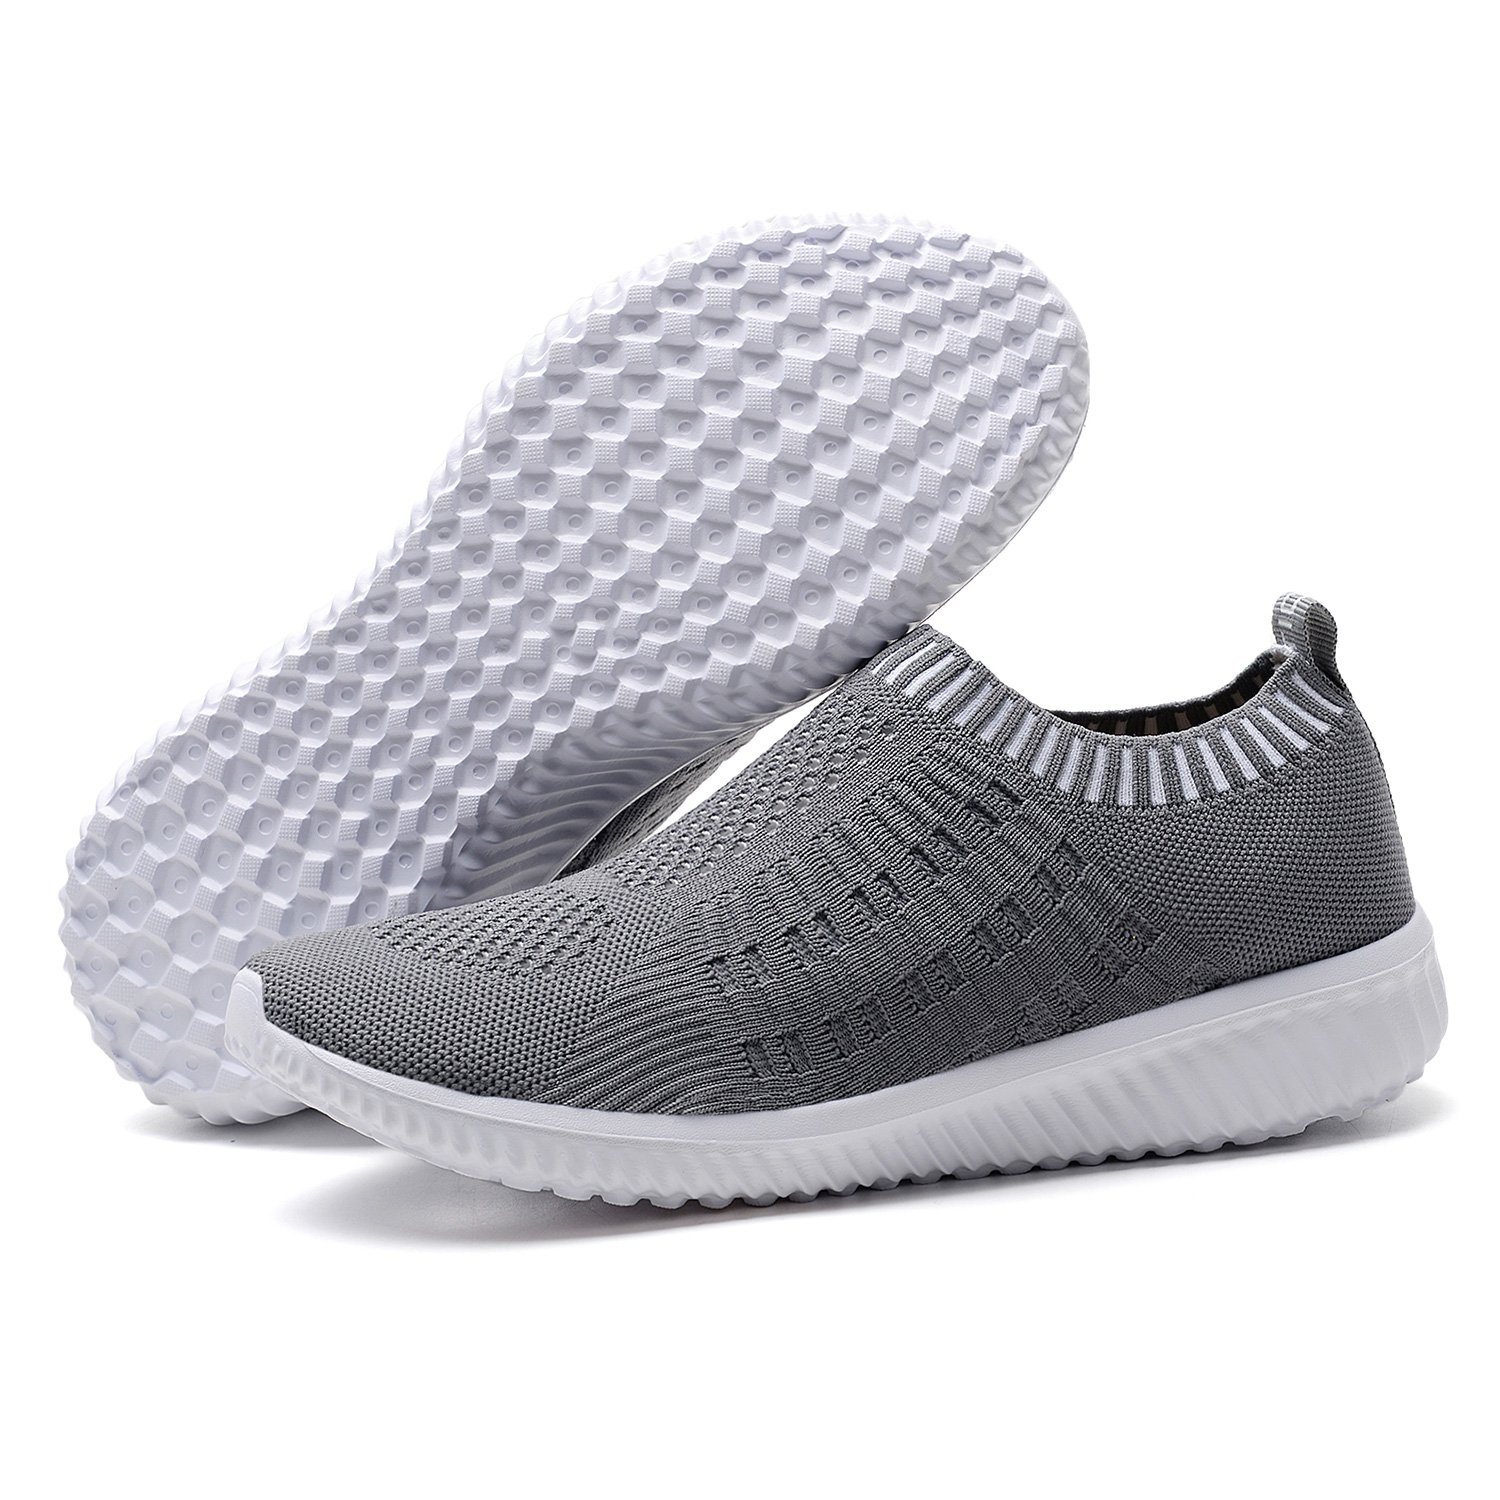 TIOSEBON Women's Athletic Shoes Casual Mesh Walking Sneakers B076P2P3GX - Breathable Running Shoes B076P2P3GX Sneakers 6.5 M US|6701 Deep Gray 291210